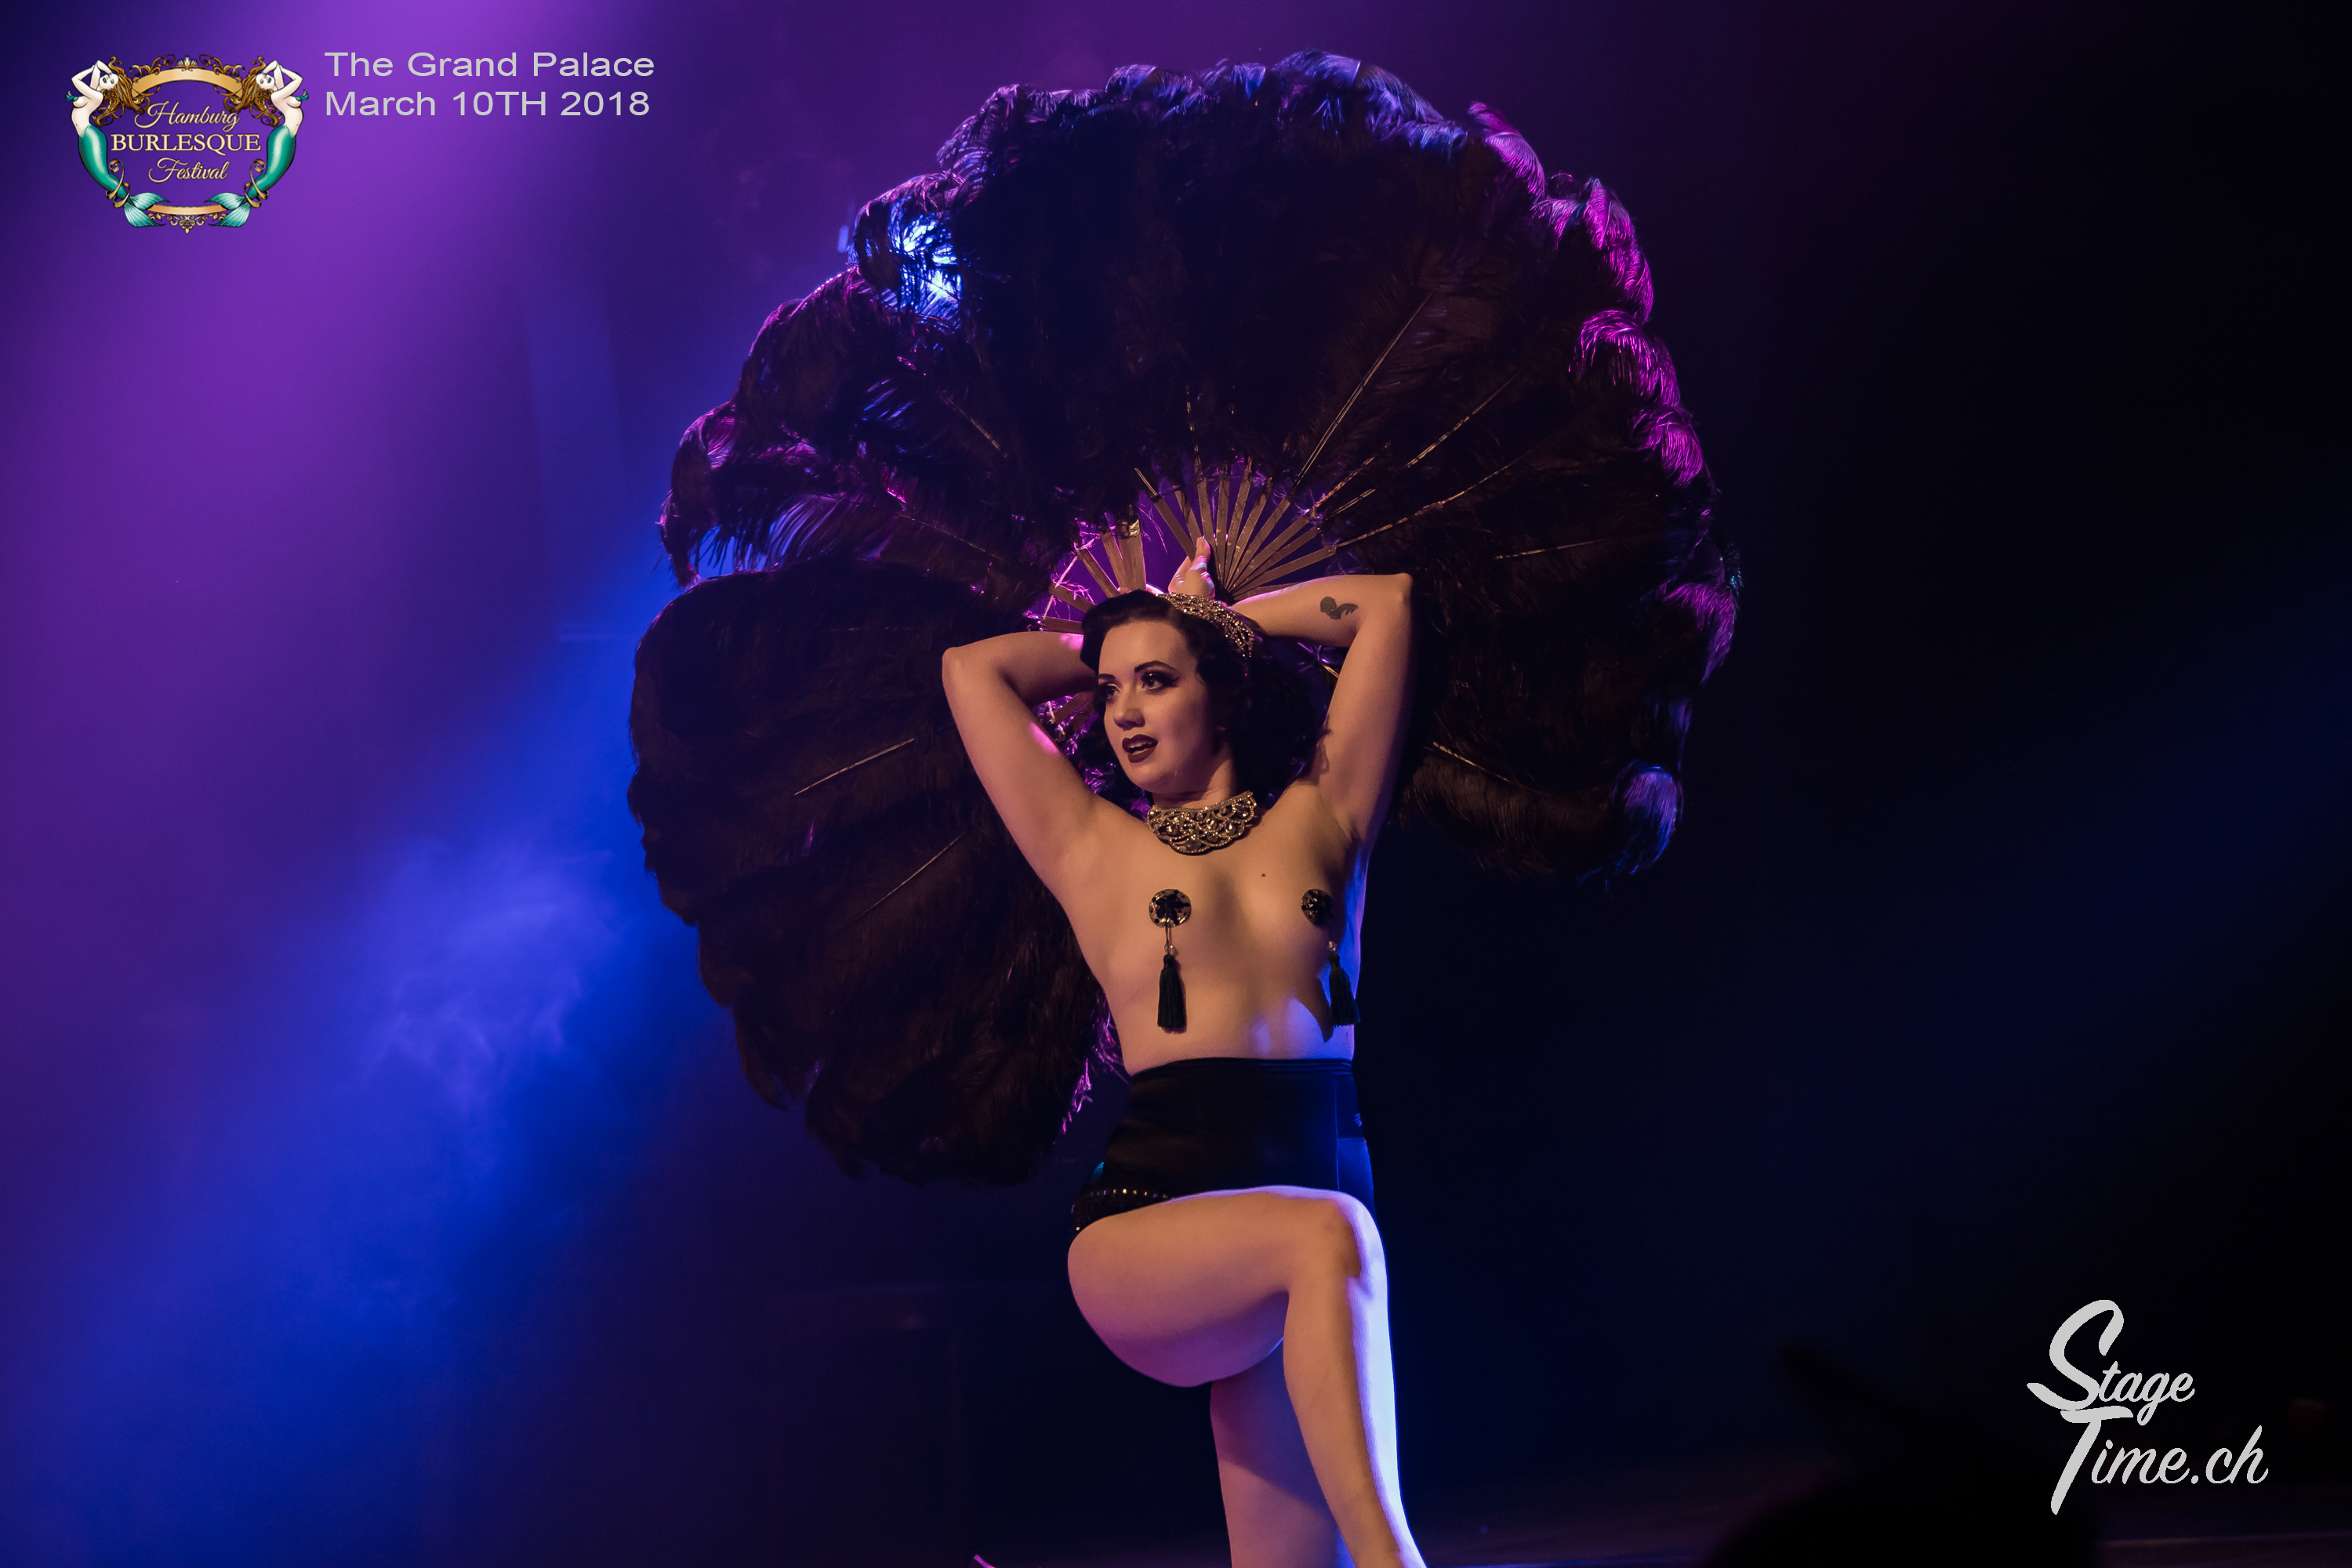 Hamburg_Burlesque_Festival_The_Grand_Palace__📷_Christoph_Gurtner_I_stagetime.ch-132